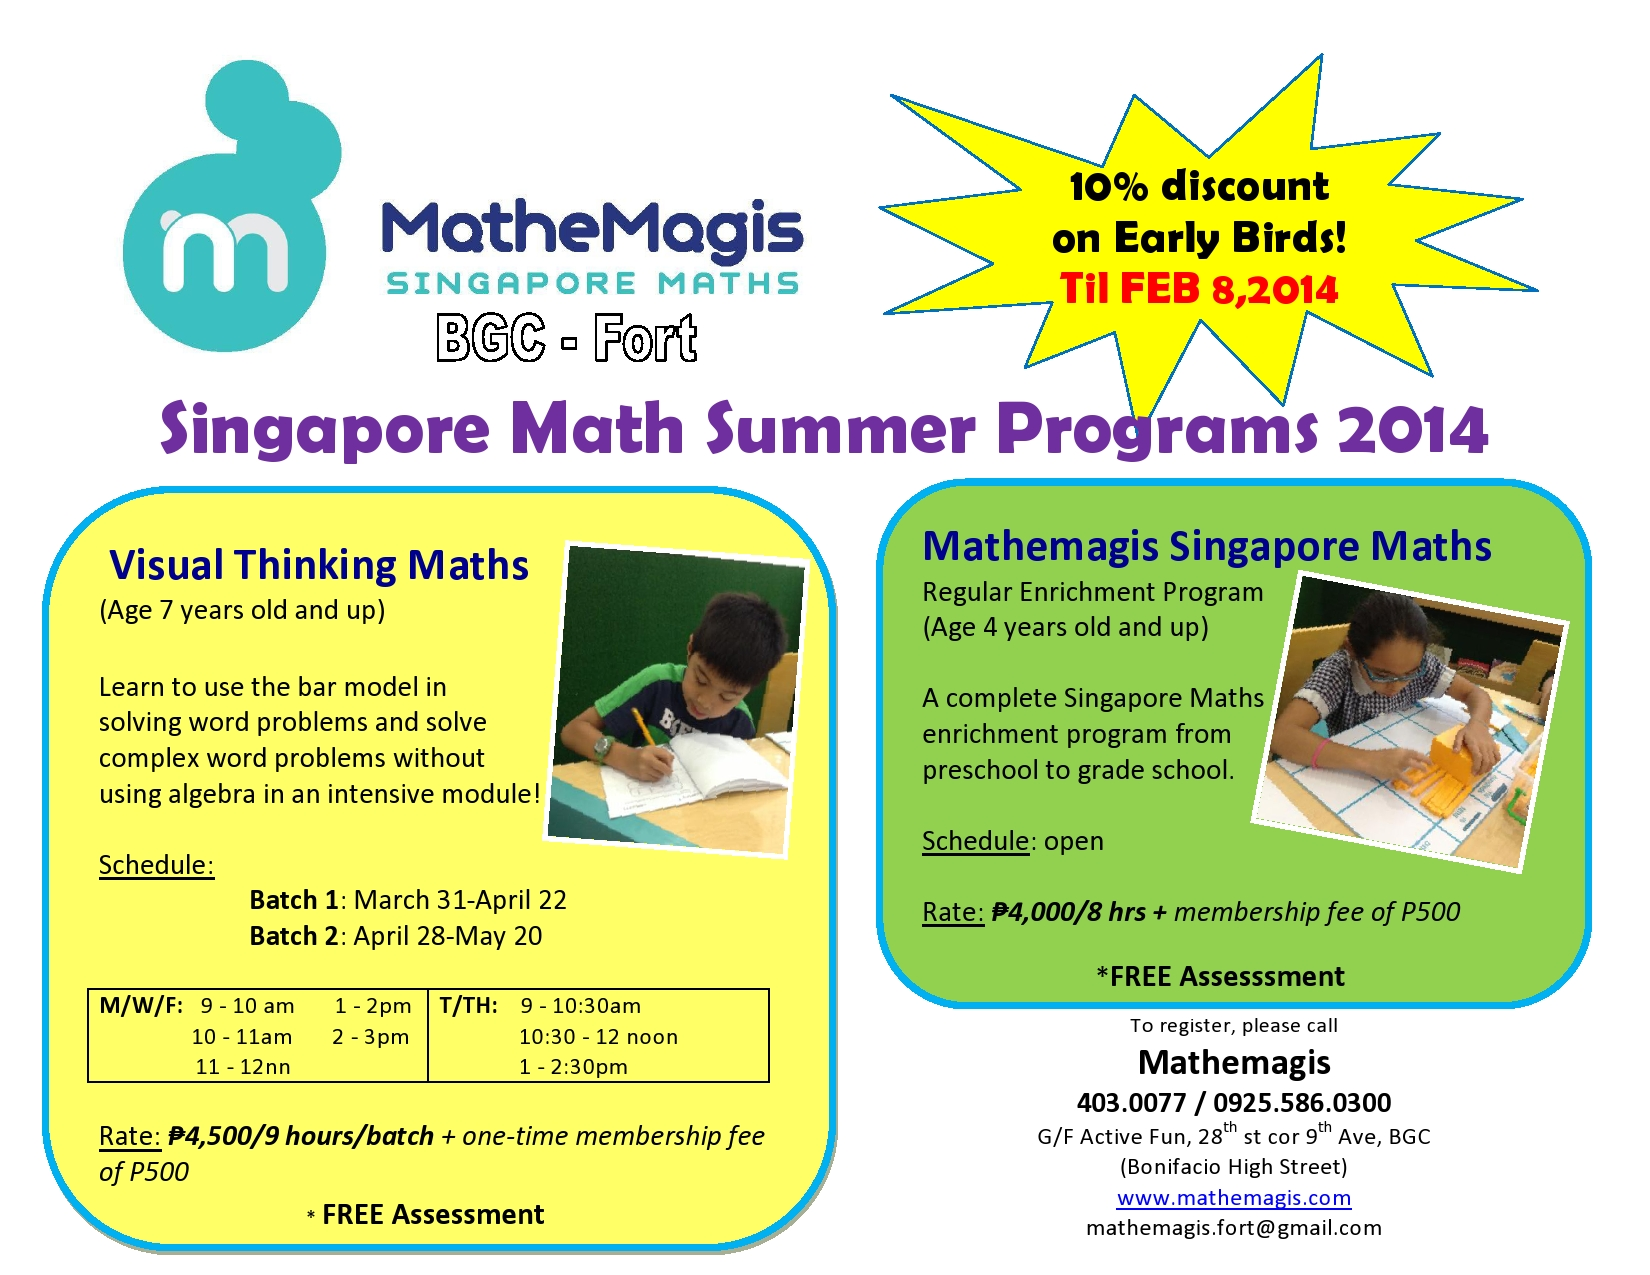 MatheMagis Singapore Maths